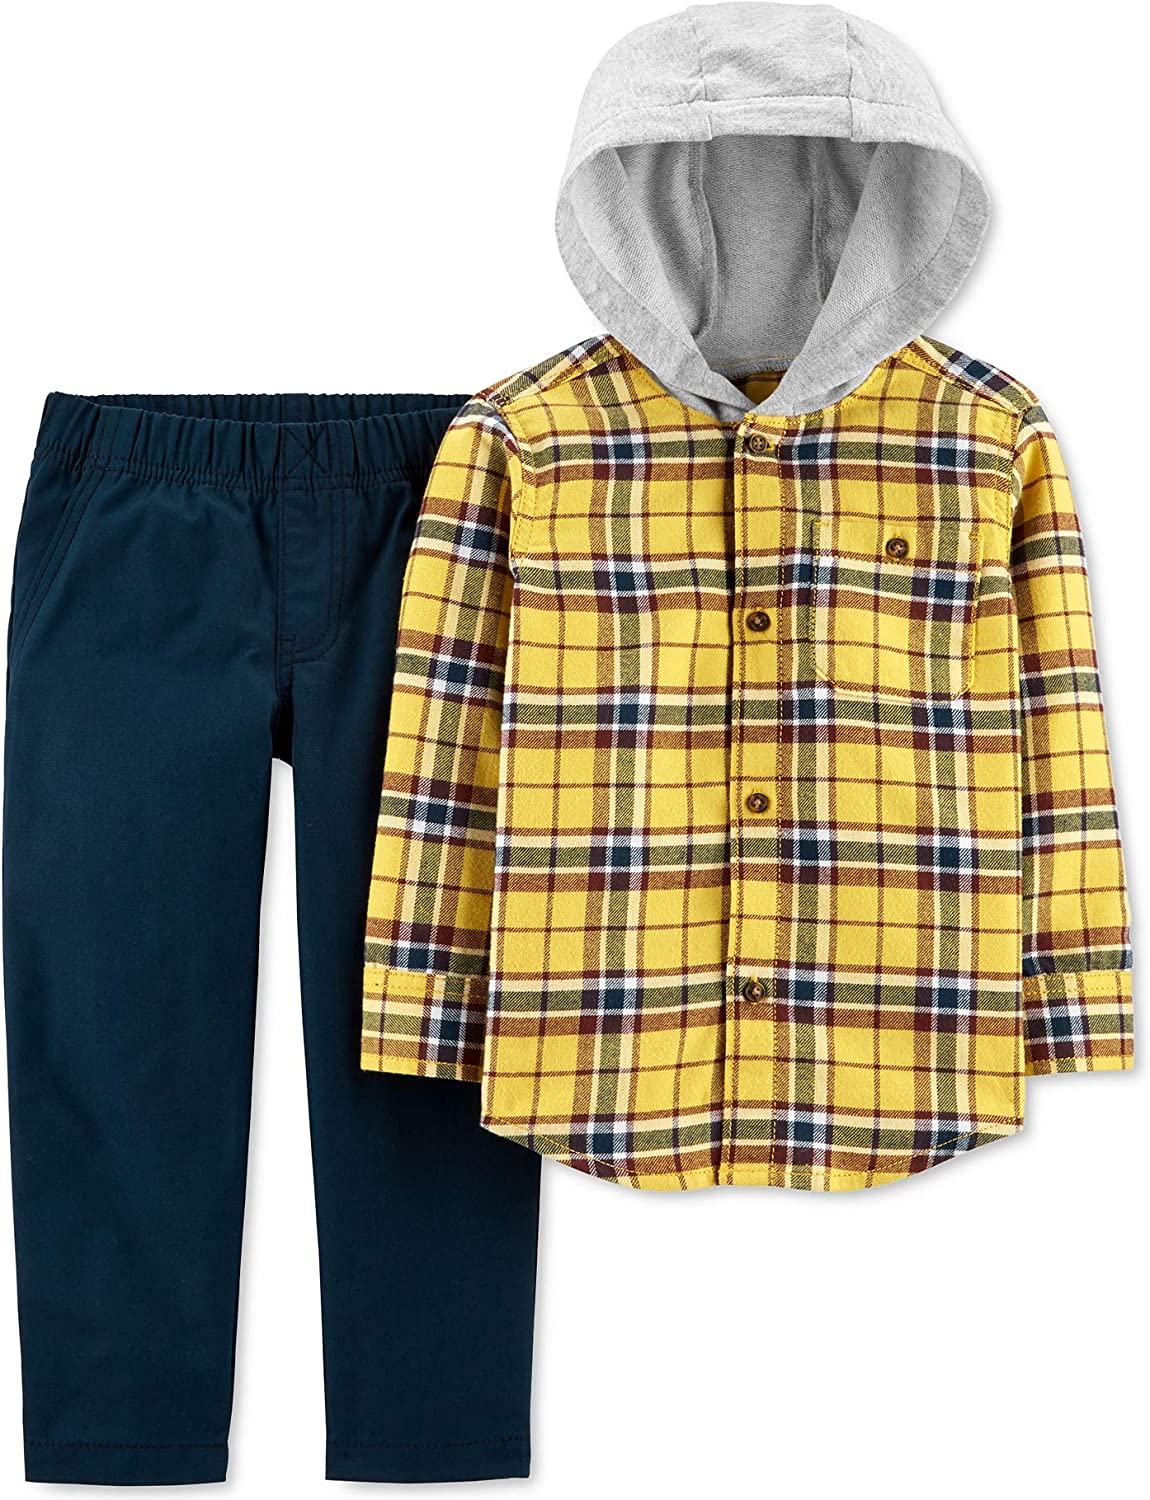 Carter's Baby Boys Outfit Blue Plaid Hoodie Pants Set Yellow 18 Months